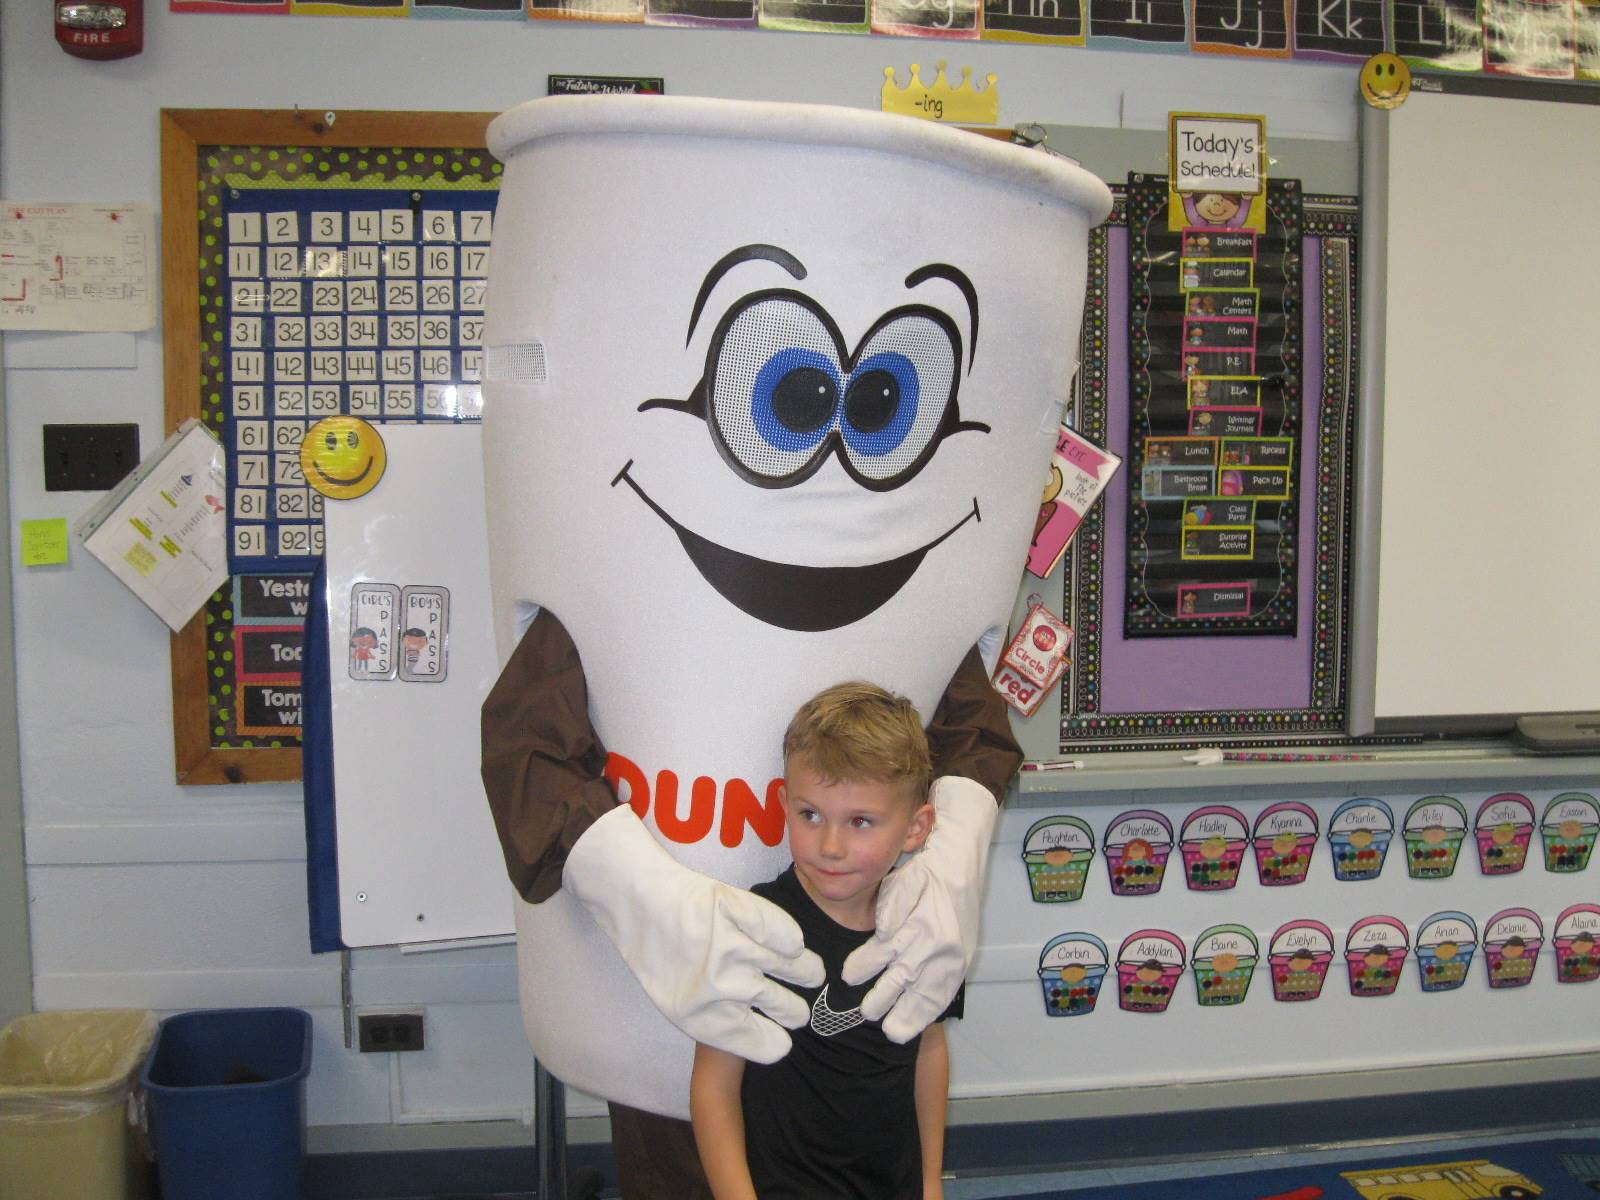 dunkin donut man gives a hug to a student